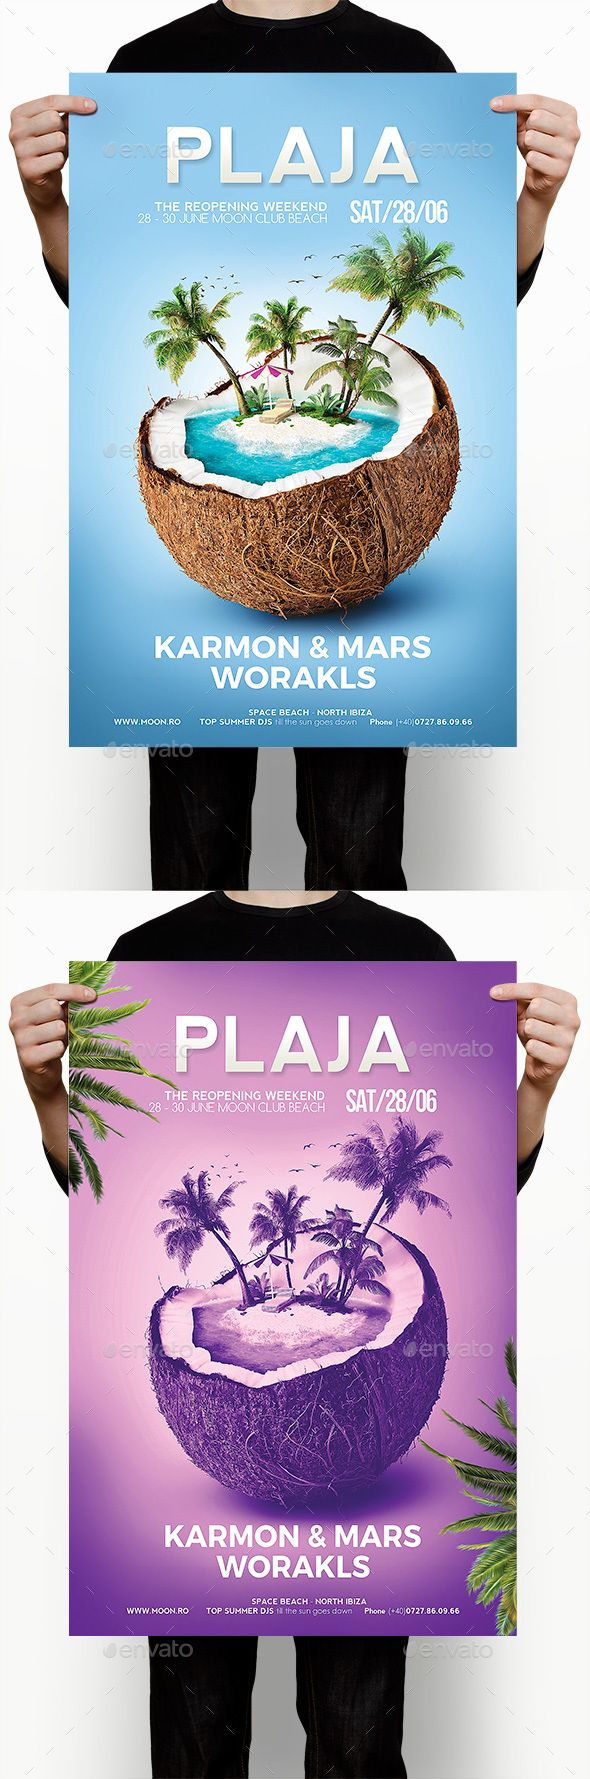 Beach Party — Photoshop PSD #trip #coconut • Available here → https://graphicriver.net/item/beach-party/17451327?ref=pxcr